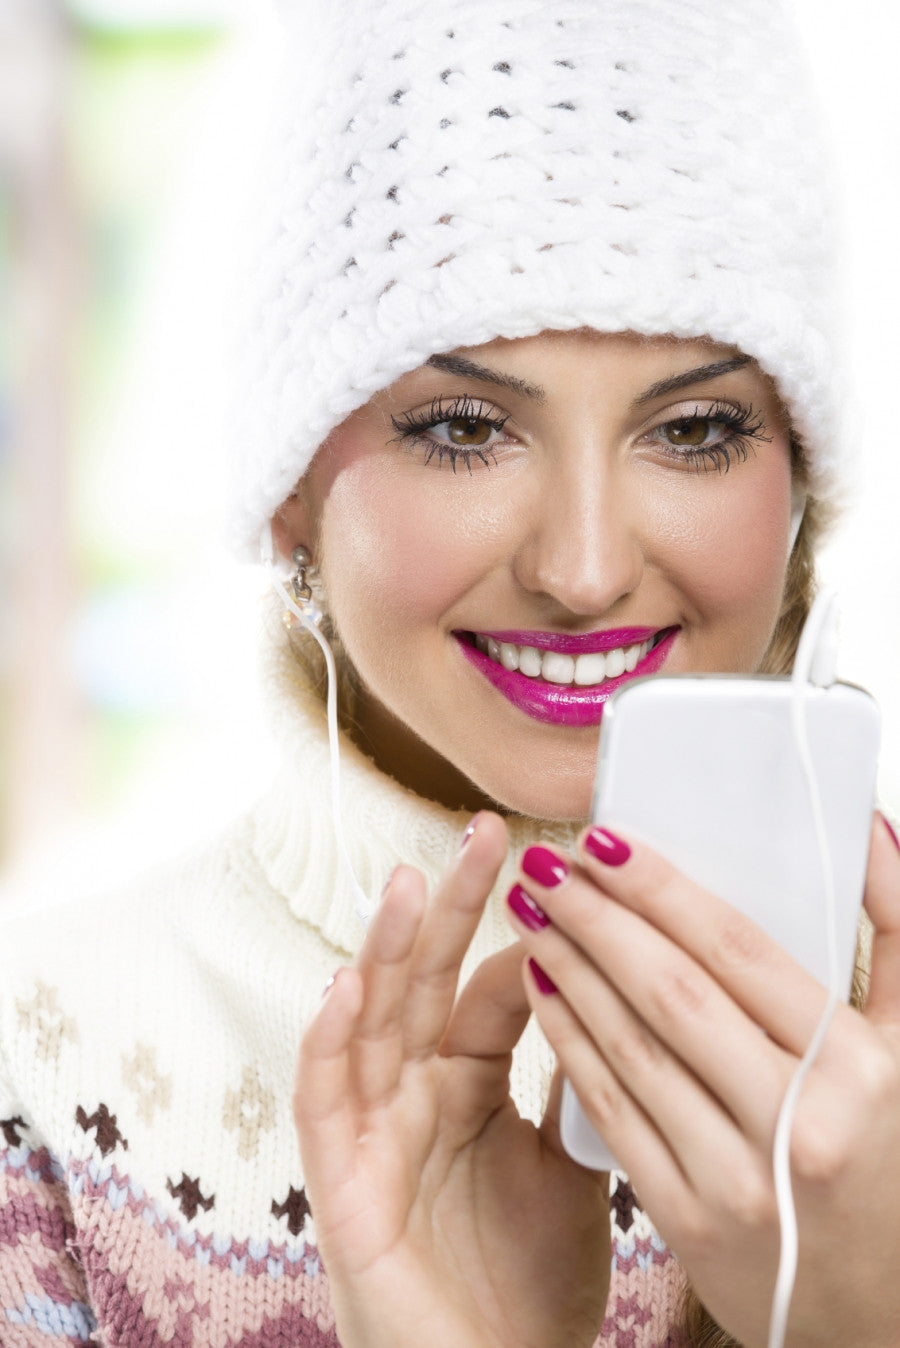 Brush On Block image of woman wearing makeup looking at smart phone.